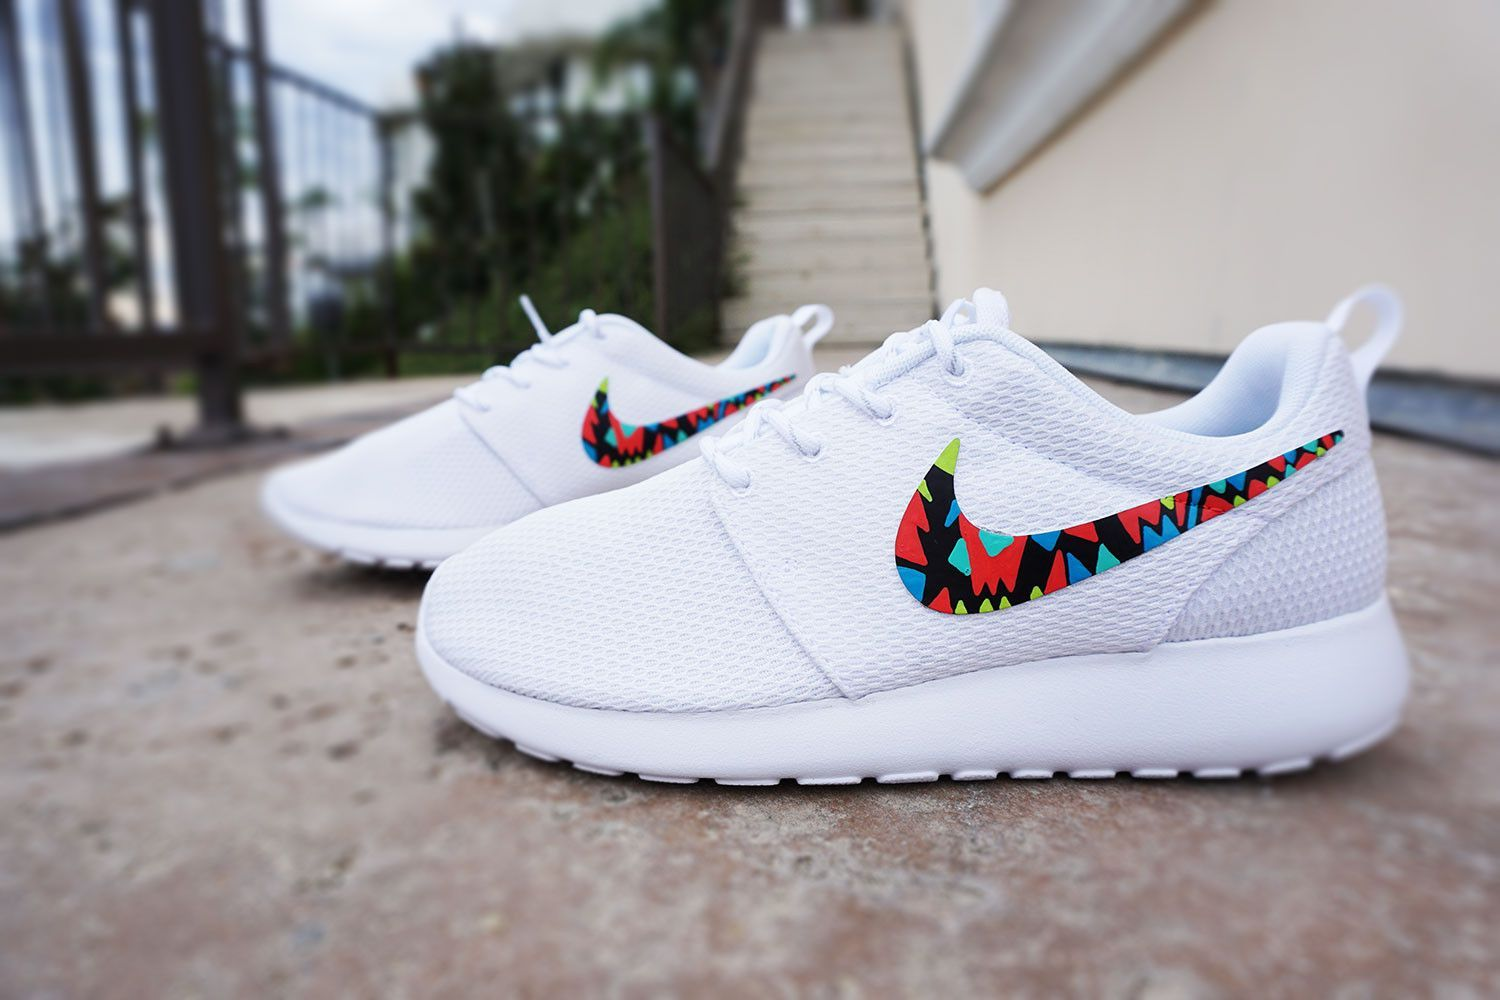 d90ecabdd9e3dc Womens Custom Nike Roshe Run sneakers